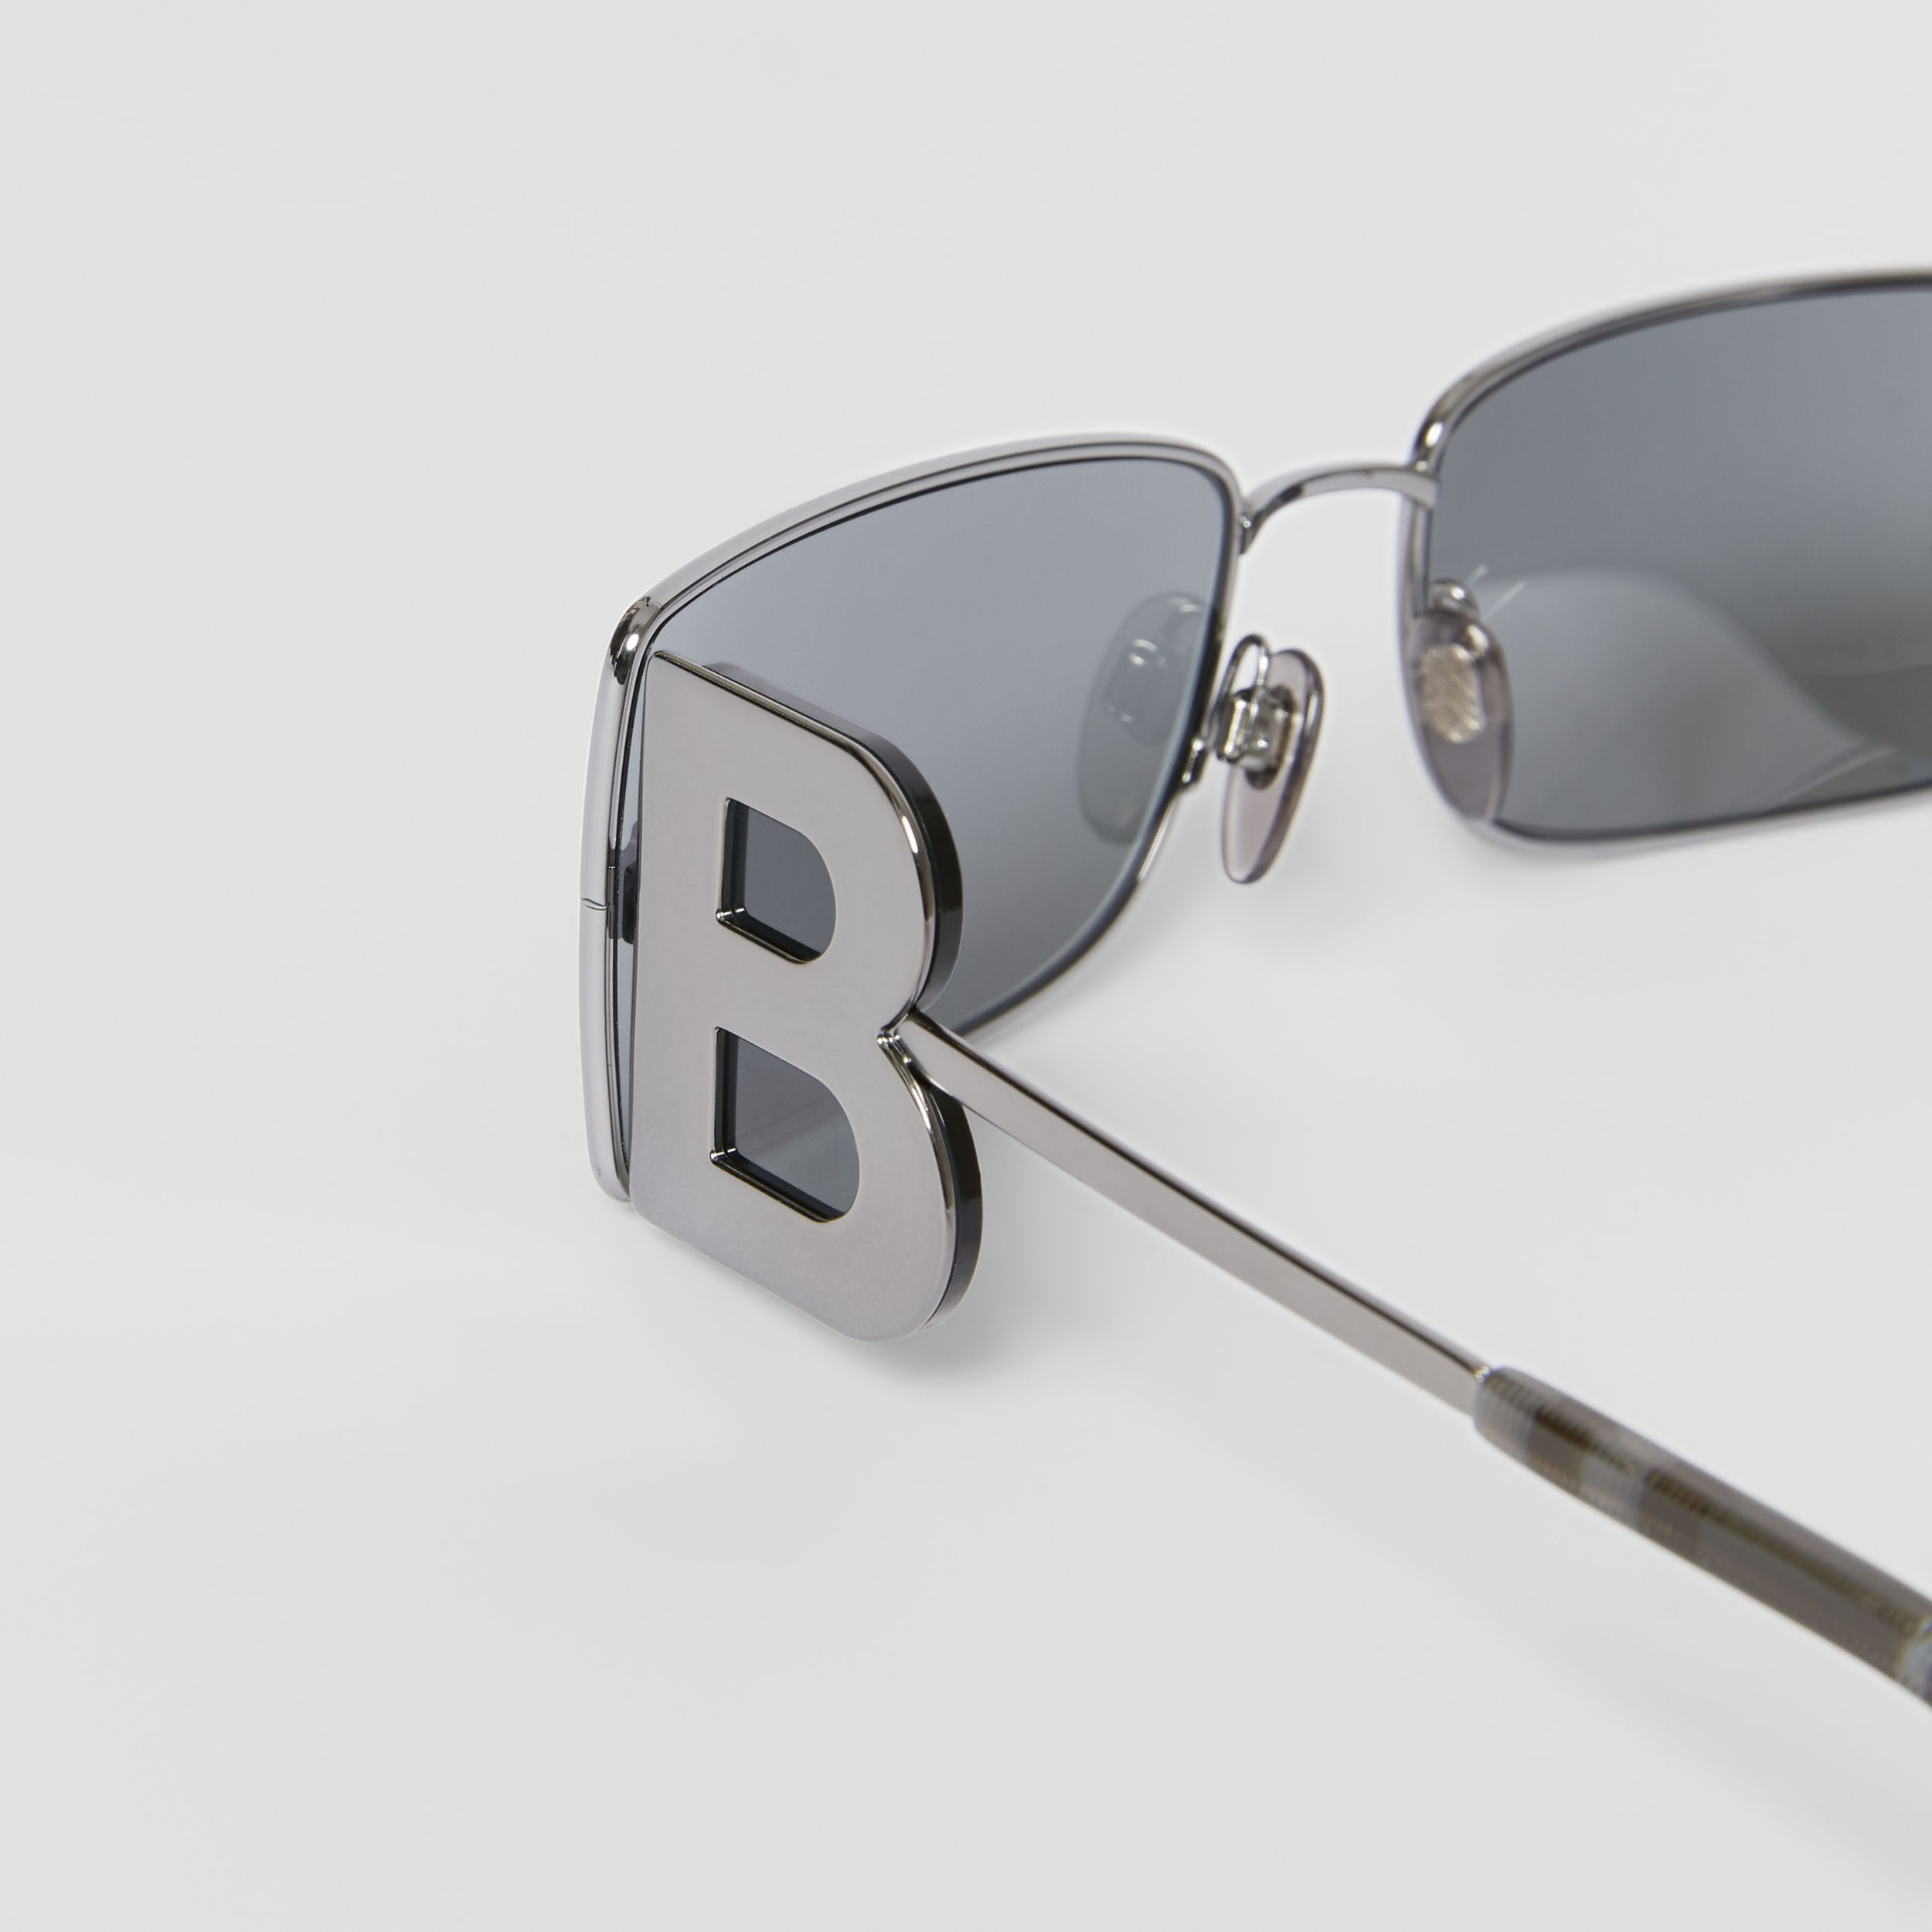 'B' Lens Detail Rectangular Frame Sunglasses in Gunmetal Grey | Burberry - 2